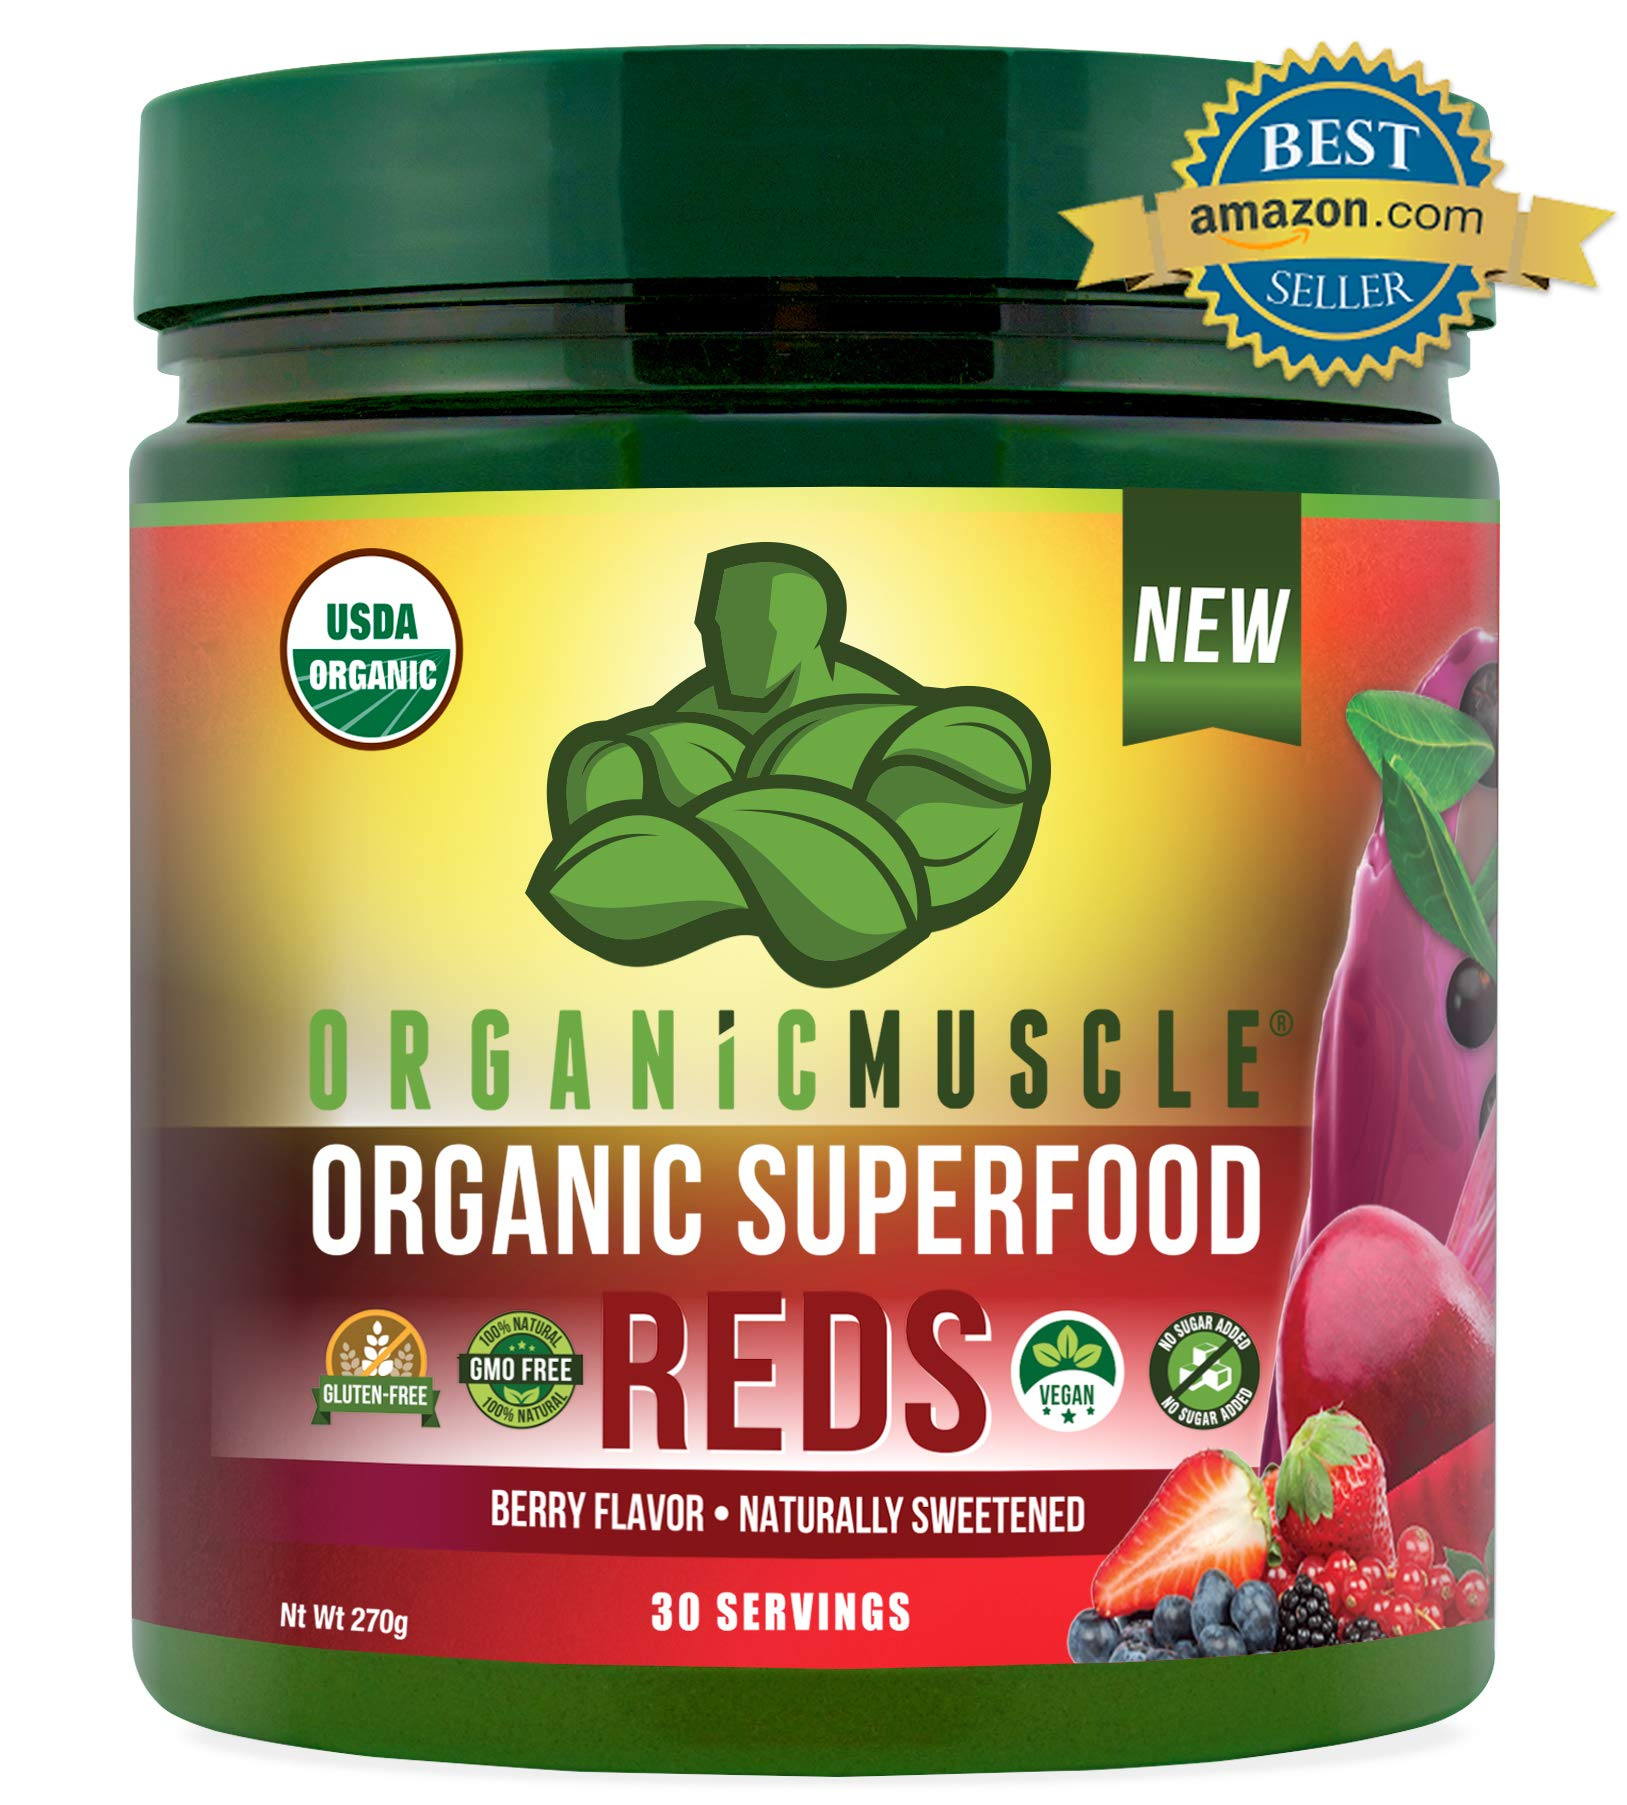 Certified Organic Superfood Reds Powder | Vital Reds Juice Supplement for Detox, Energy, Focus, Digestion, Metabolic Boost & Anti-Aging | Vegan, Non-GMO, Berry Flavor, 30 Day Supply | ORGANIC MUSCLE by Organic Muscle